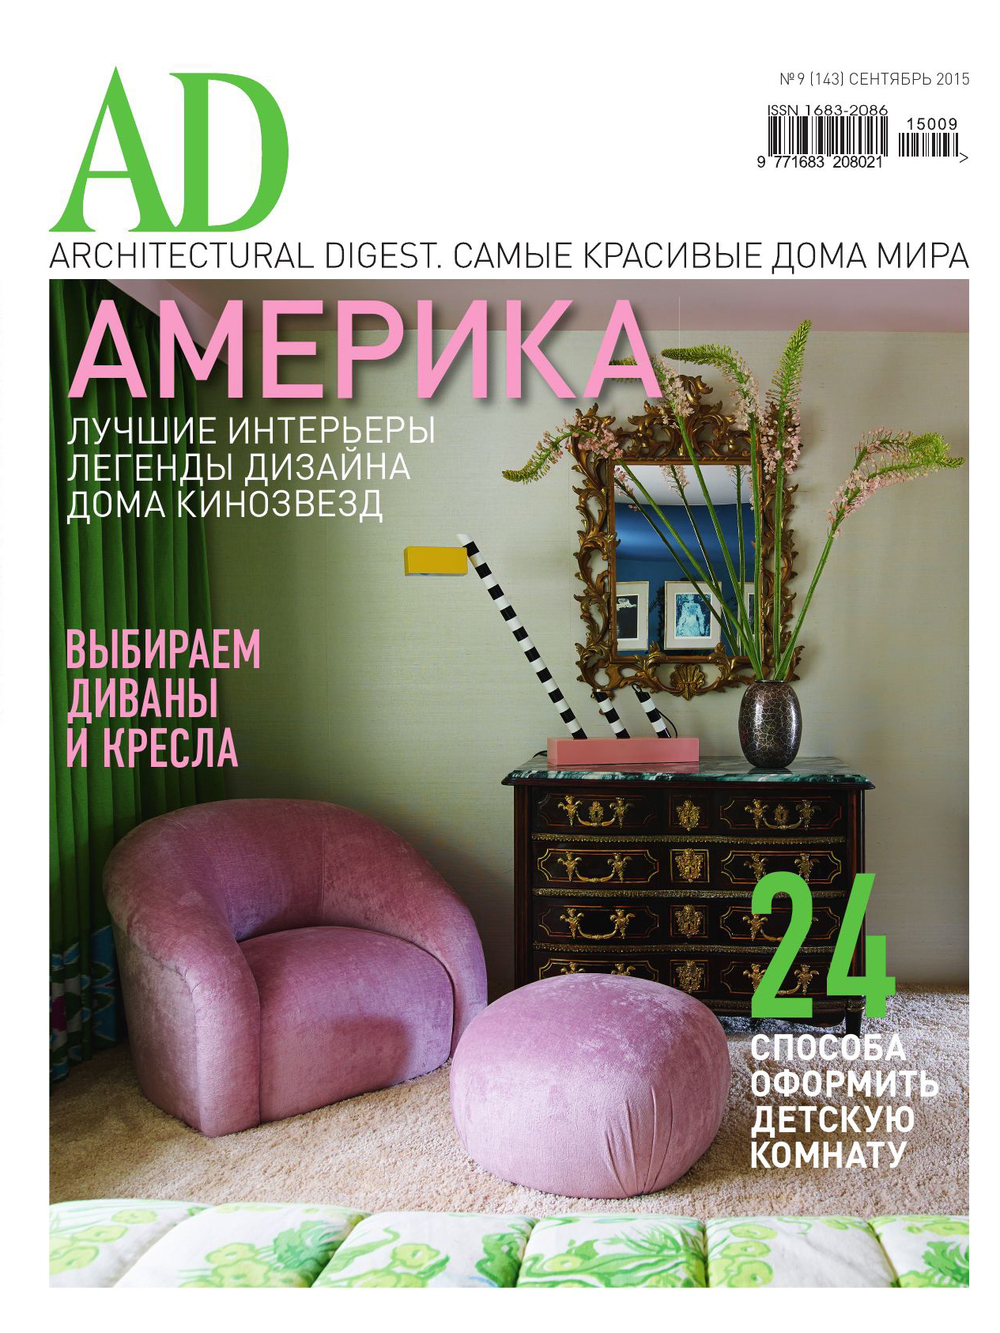 AD Russia_Sept 2015_cover.jpg